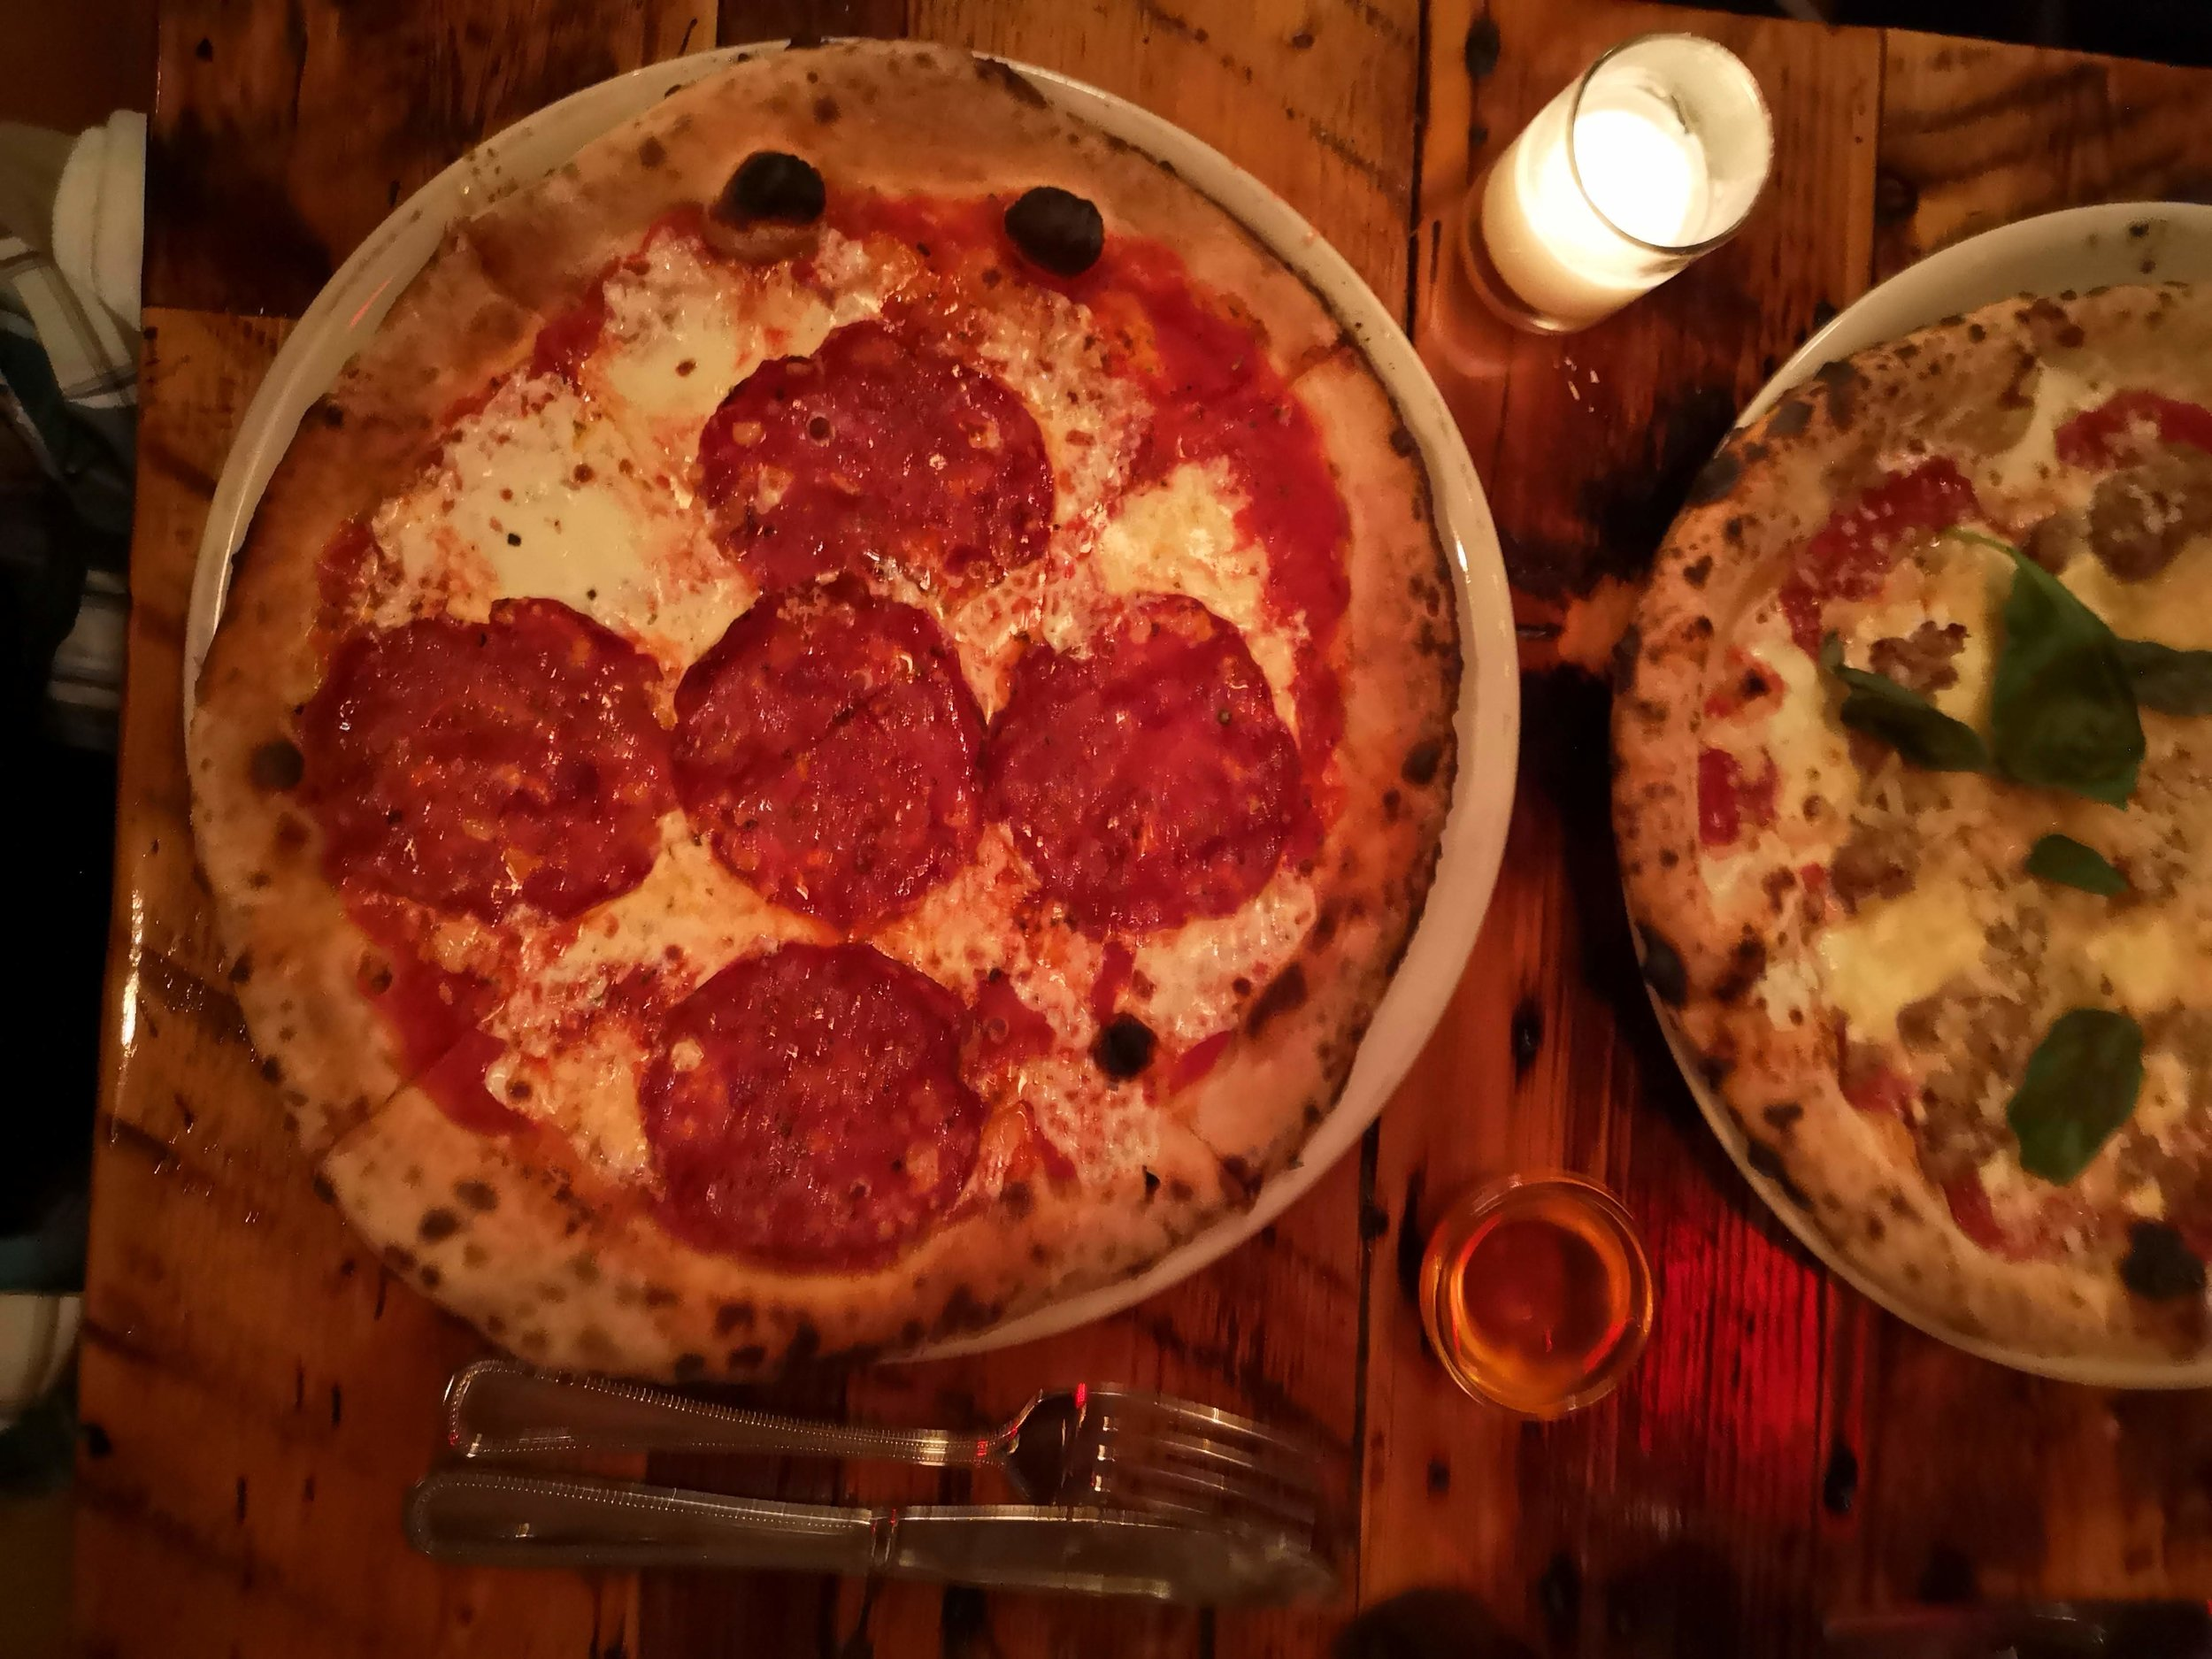 yum pizza barboncino pizza brooklyn new york.jpg